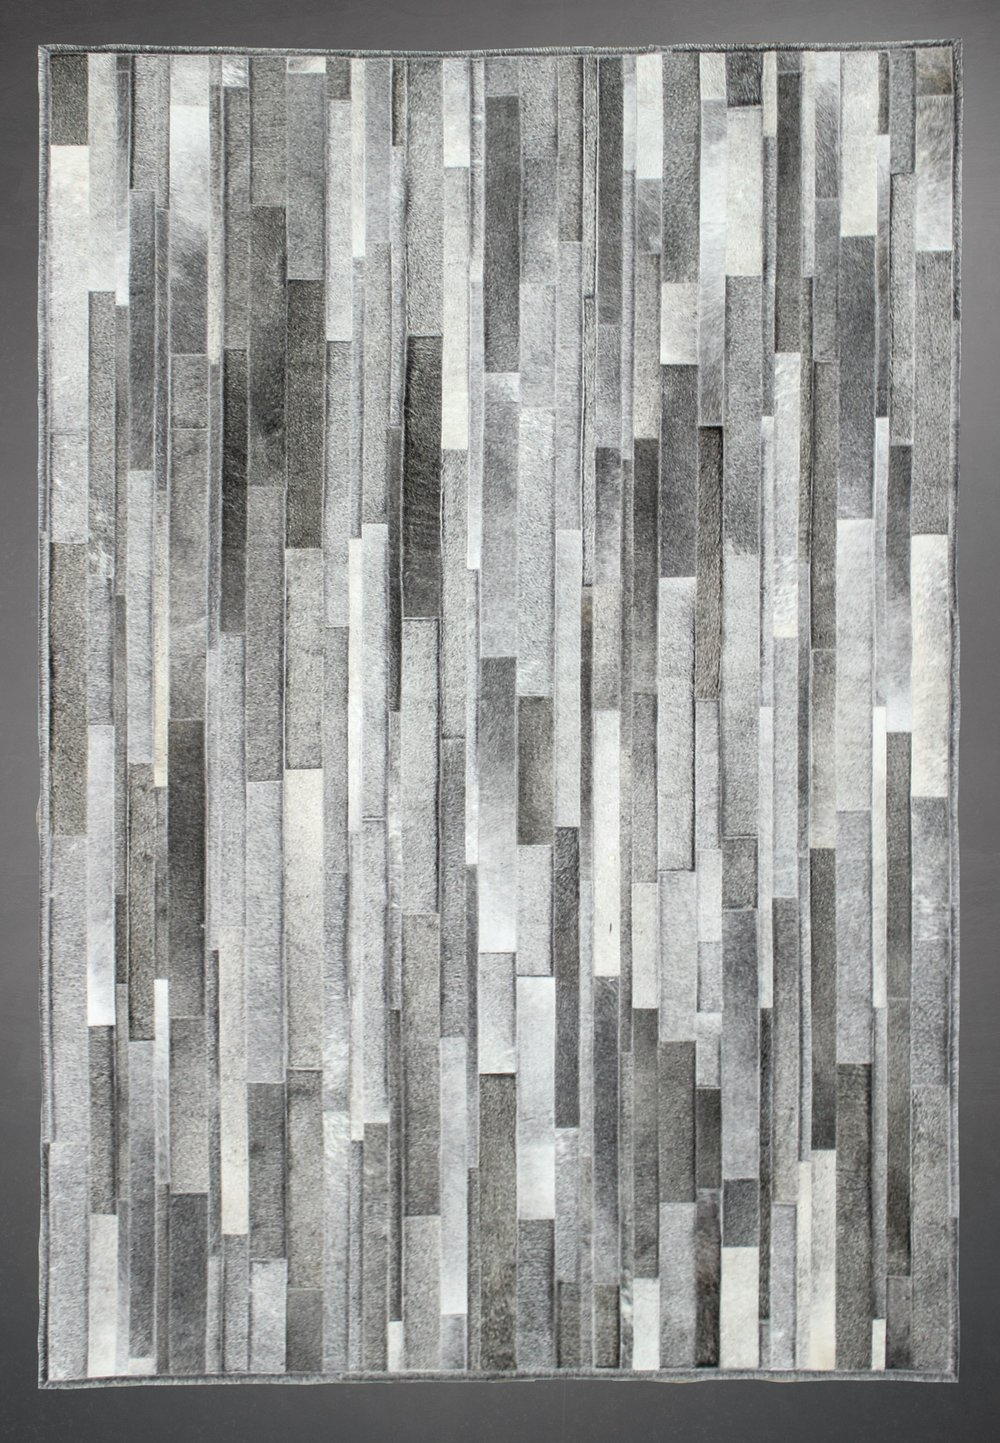 Contemporary designed fur rug in a striped pattern in grays and whites.